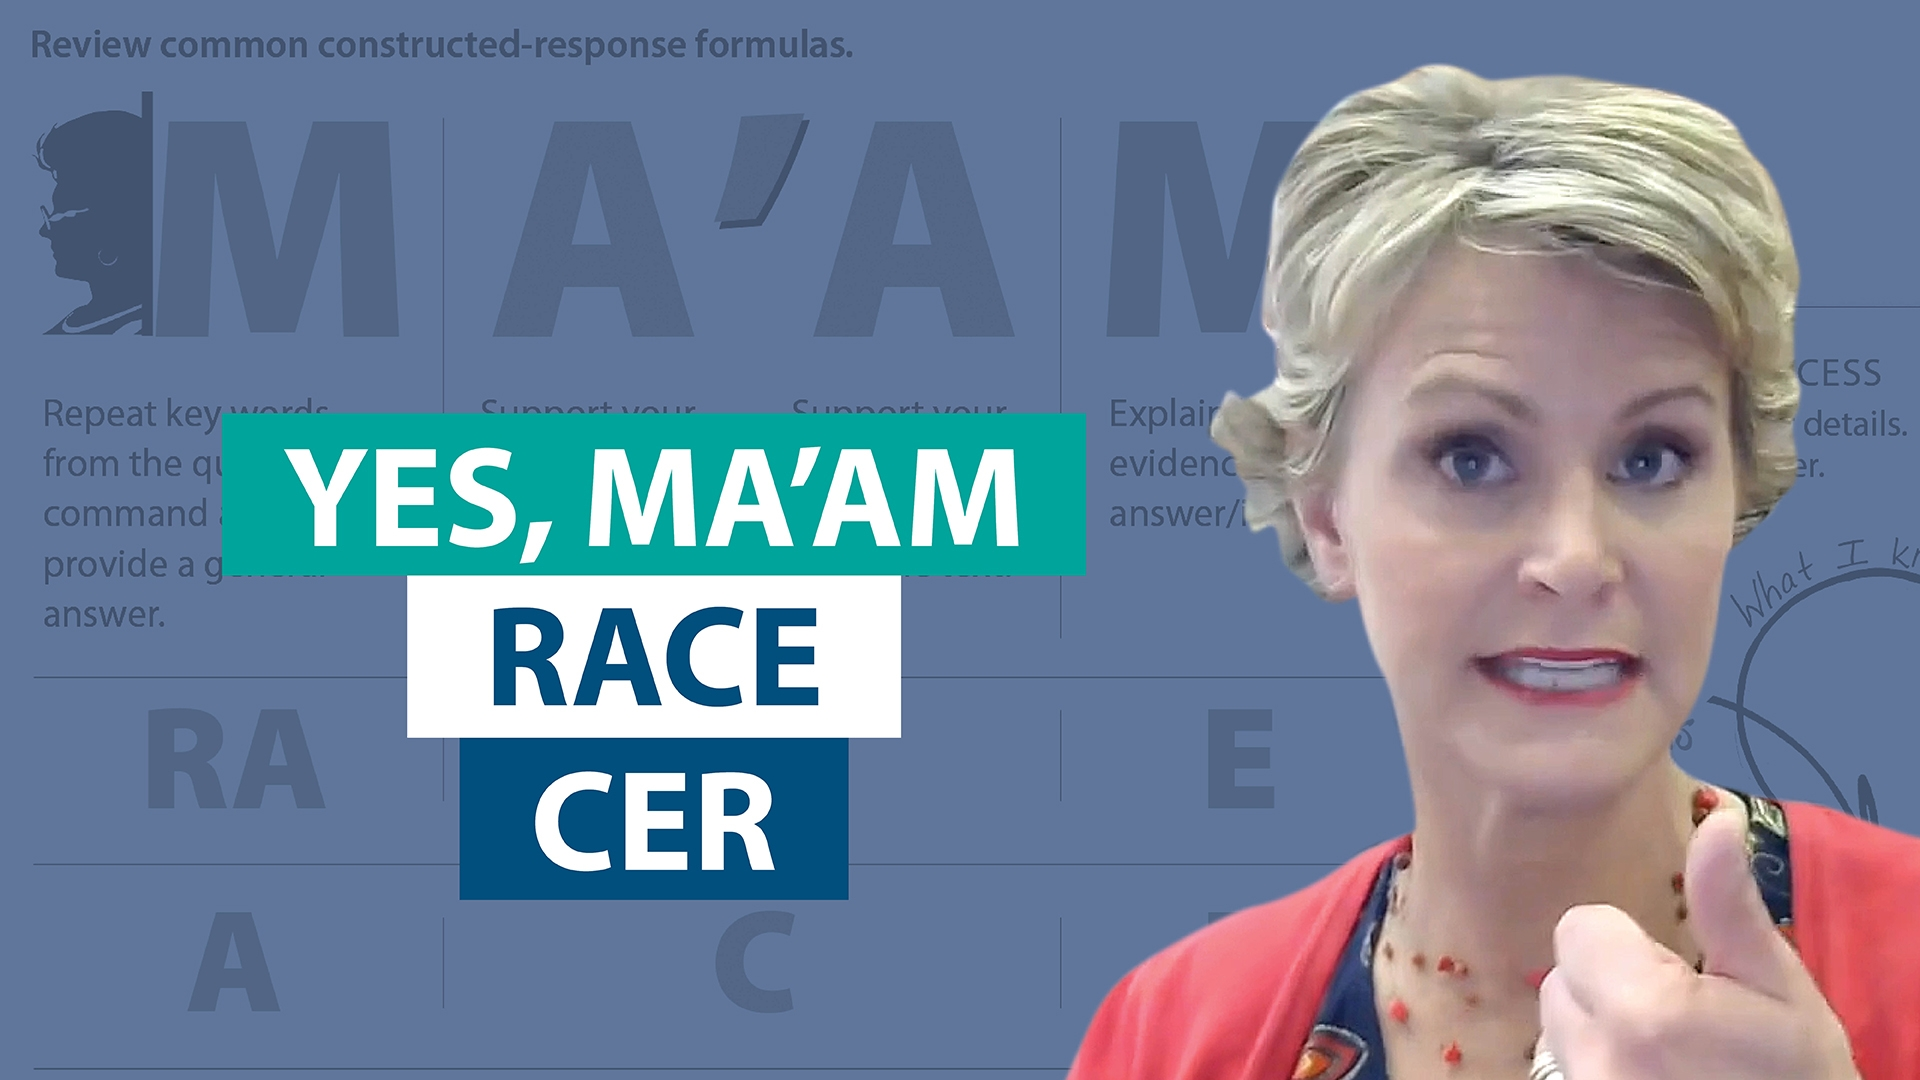 How does Yes, MA'AM fit with RACE and CER?